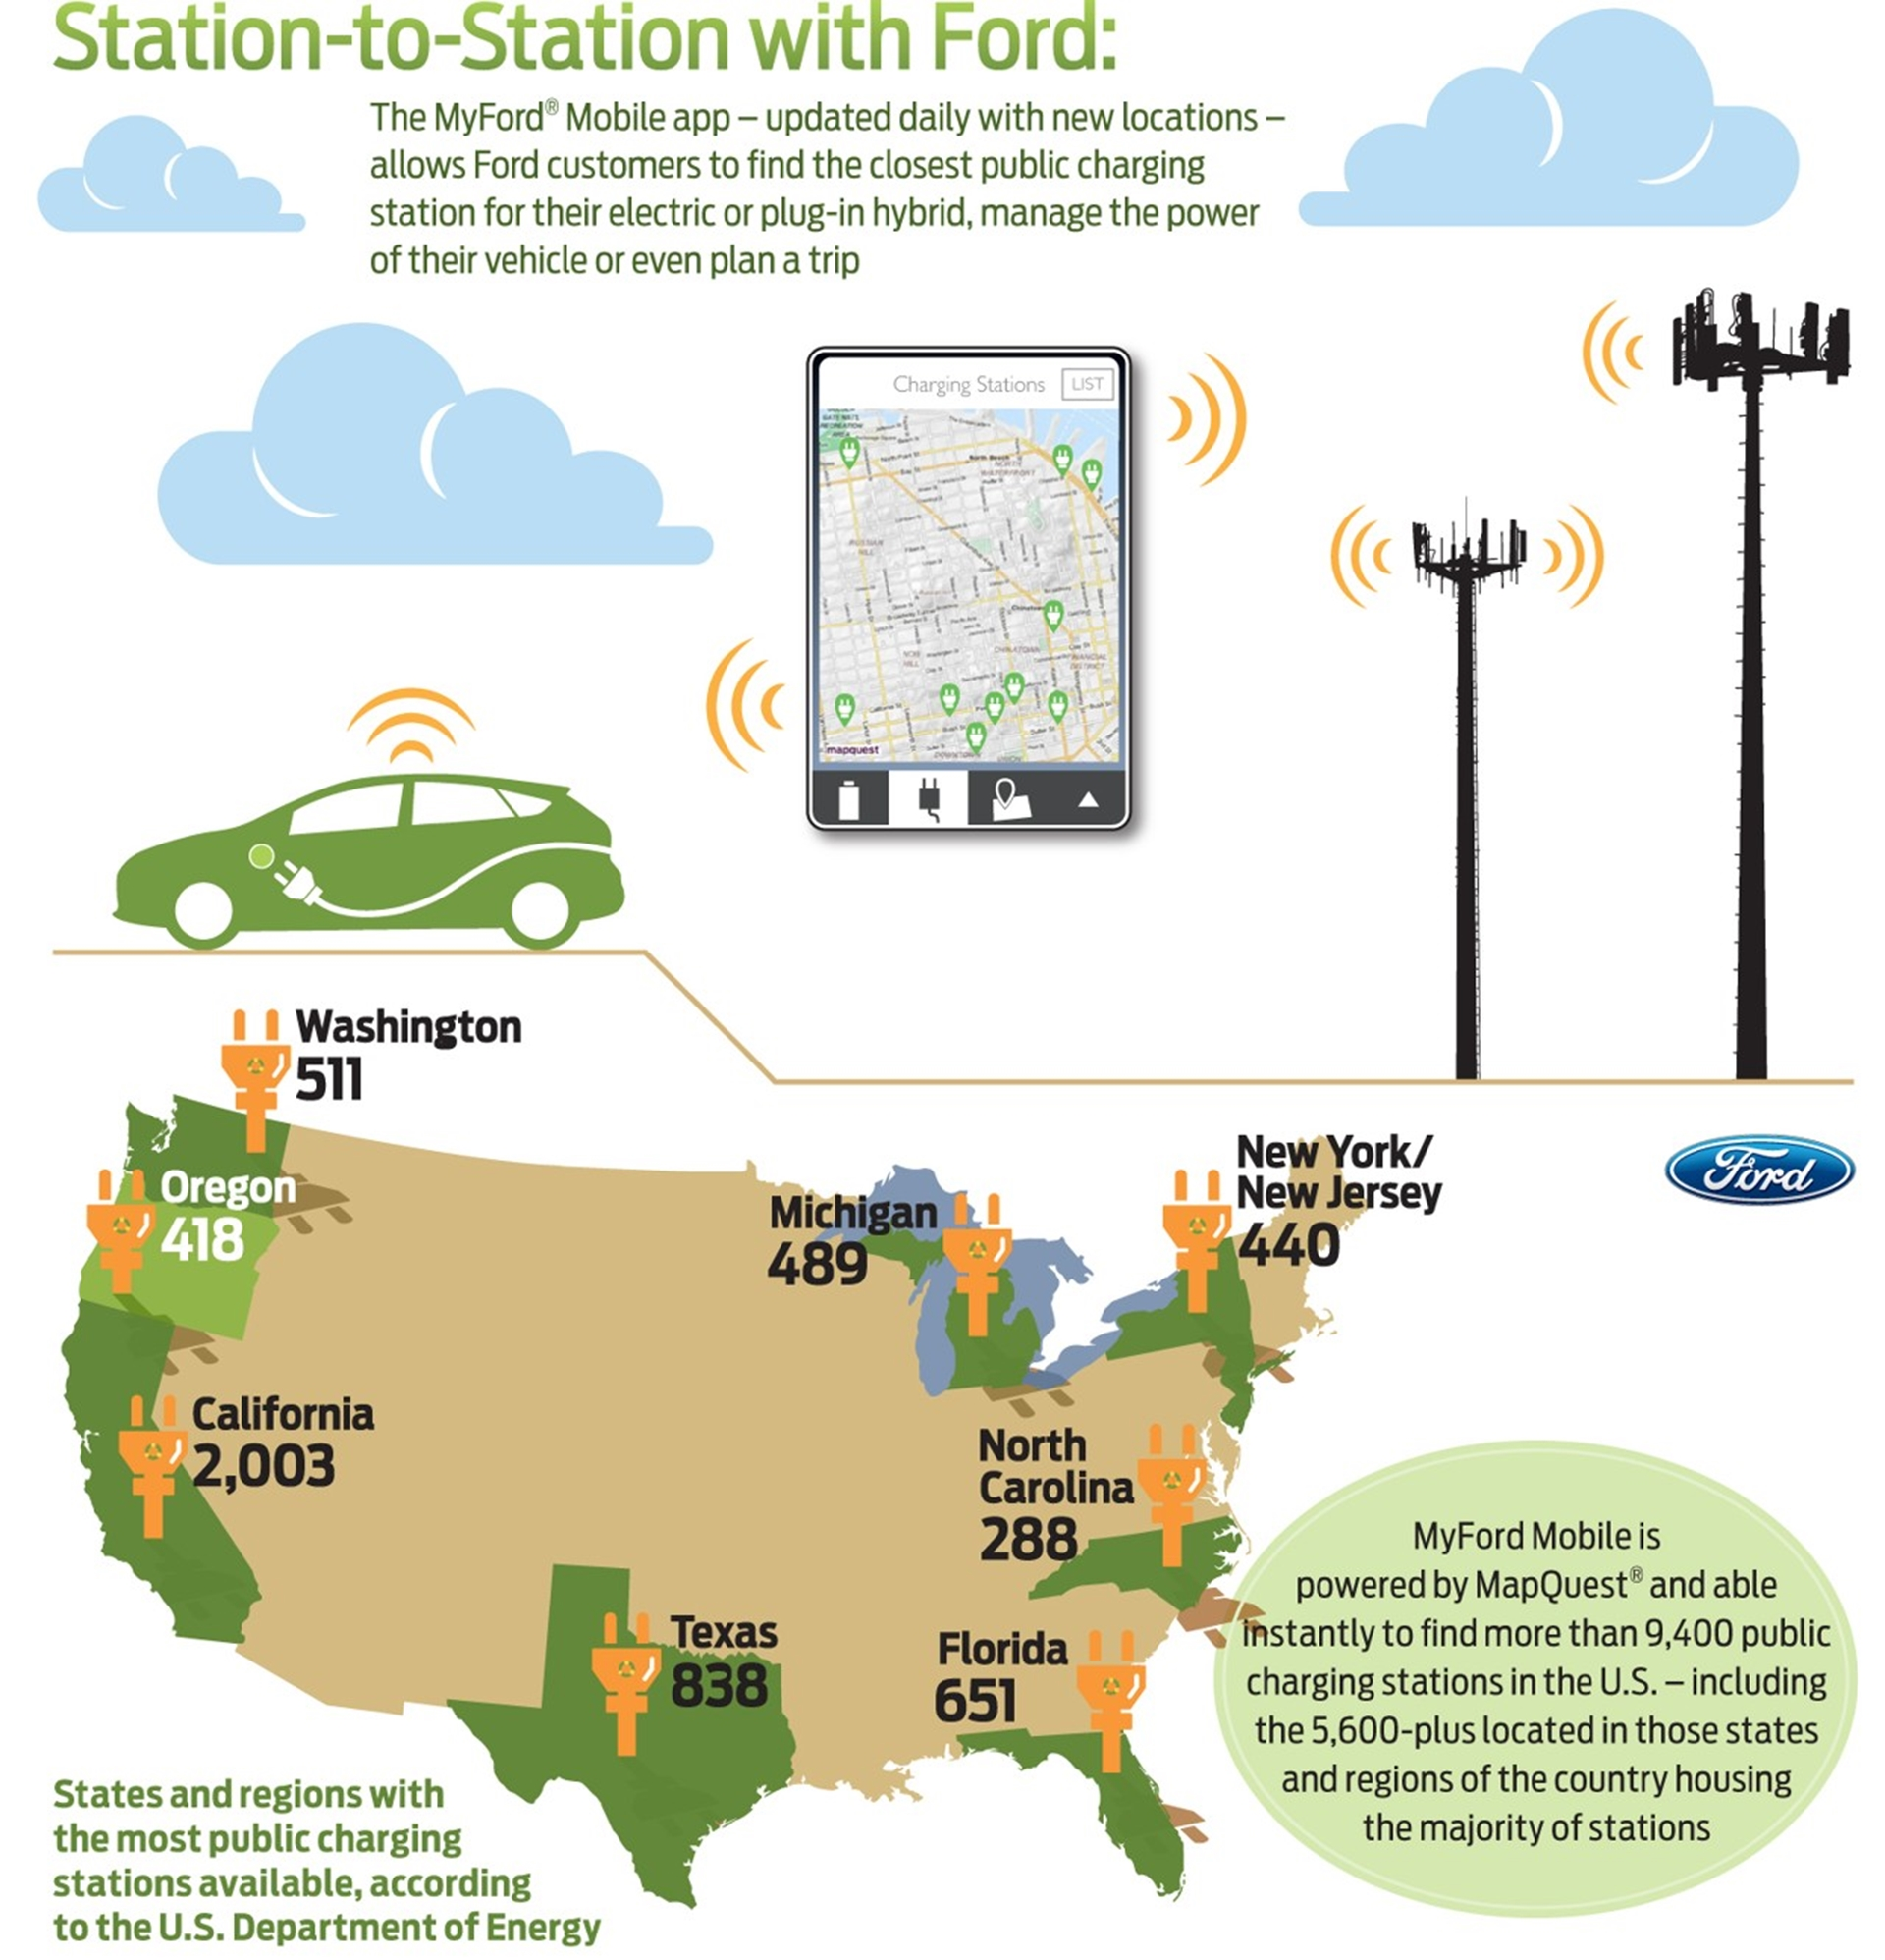 Ford Public Charging Stations